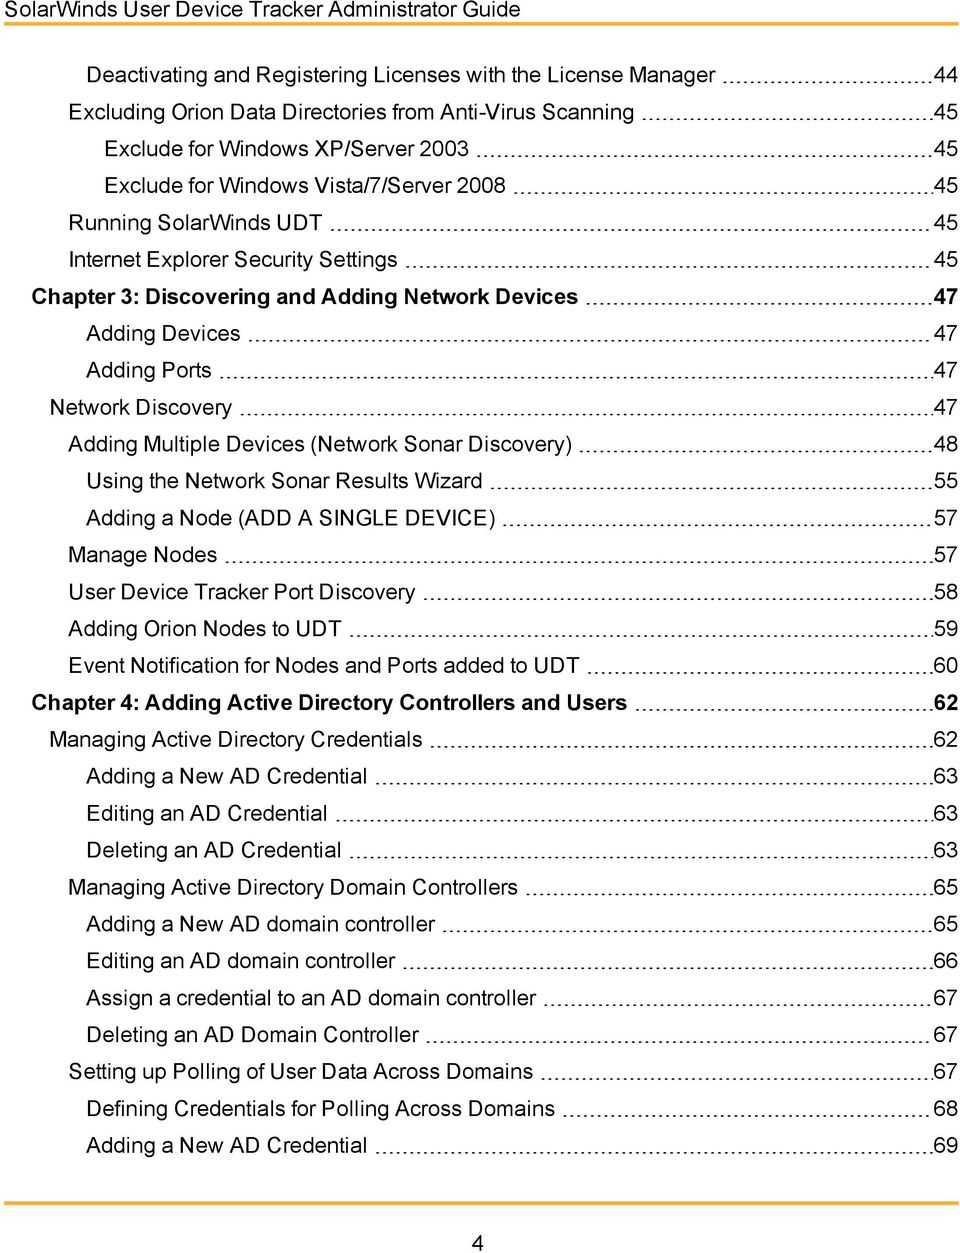 Adding Ports 47 Network Discovery 47 Adding Multiple Devices (Network Sonar Discovery) 48 Using the Network Sonar Results Wizard 55 Adding a Node (ADD A SINGLE DEVICE) 57 Manage Nodes 57 User Device